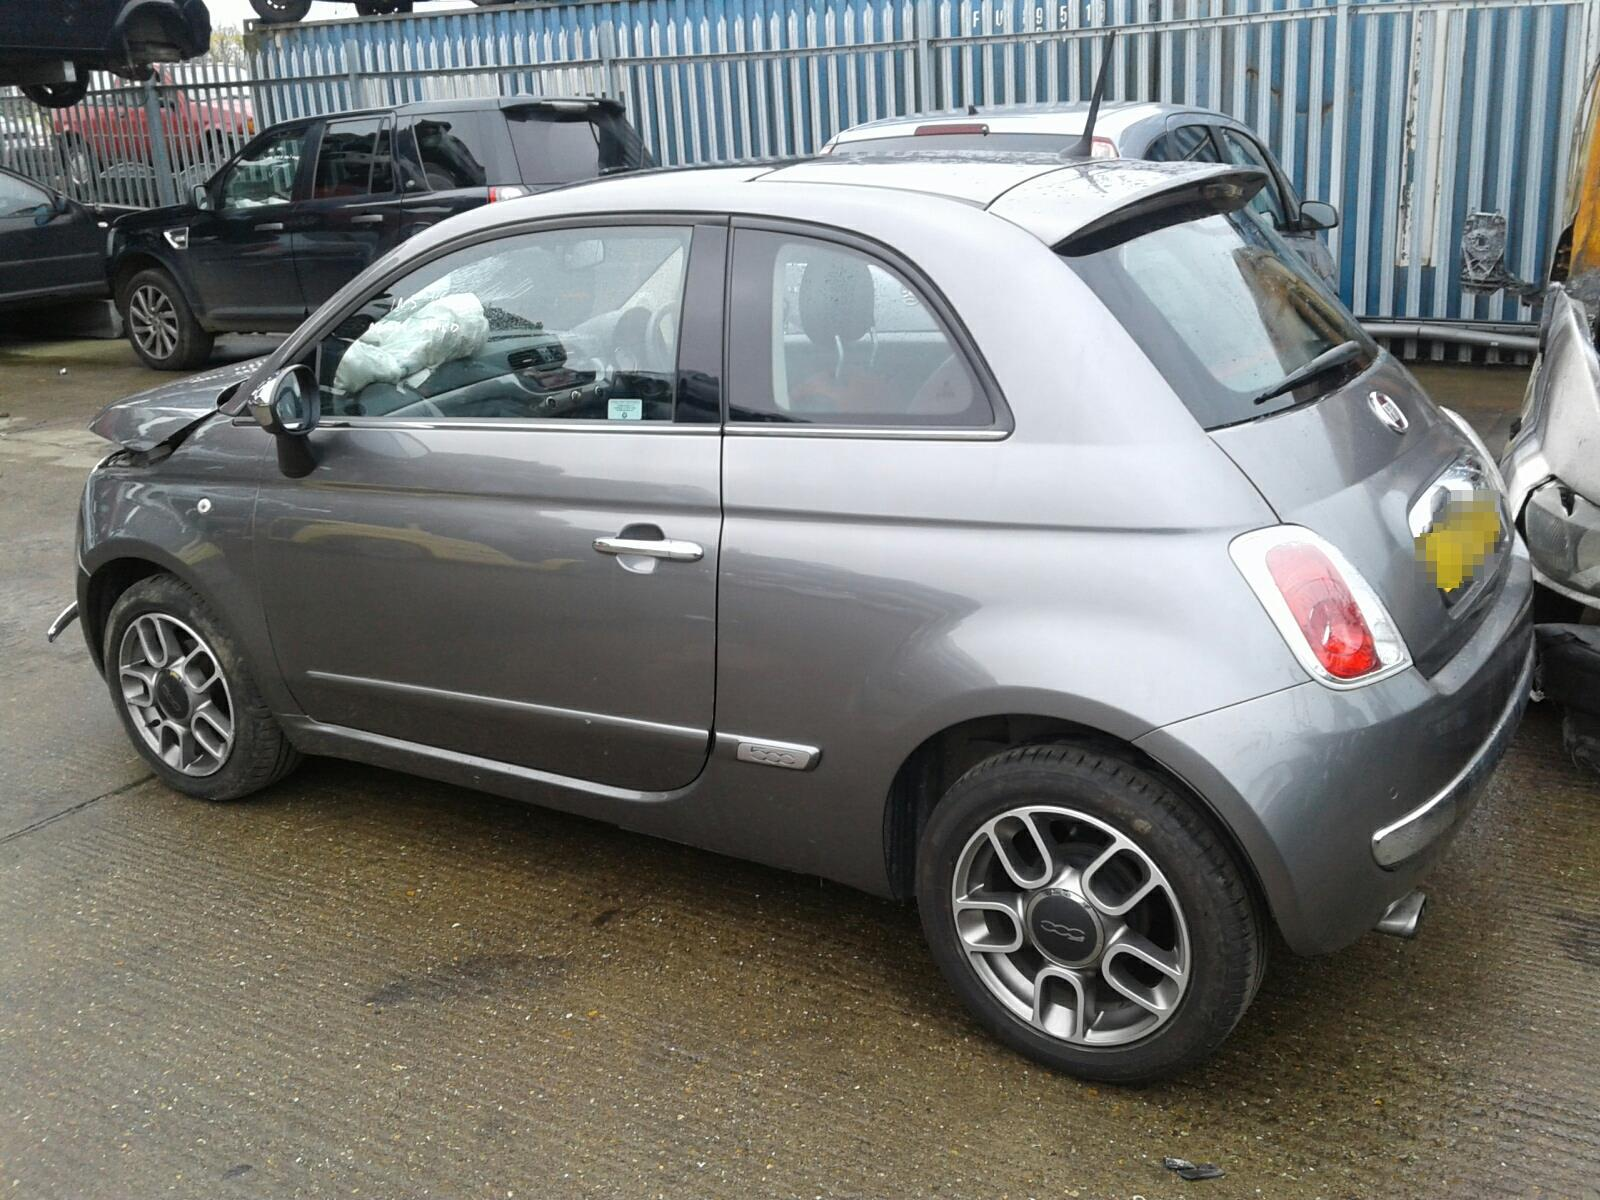 2012 Fiat 500 2008 To 2015 3 Door Hatchback Petrol Manual Spare Tire Location